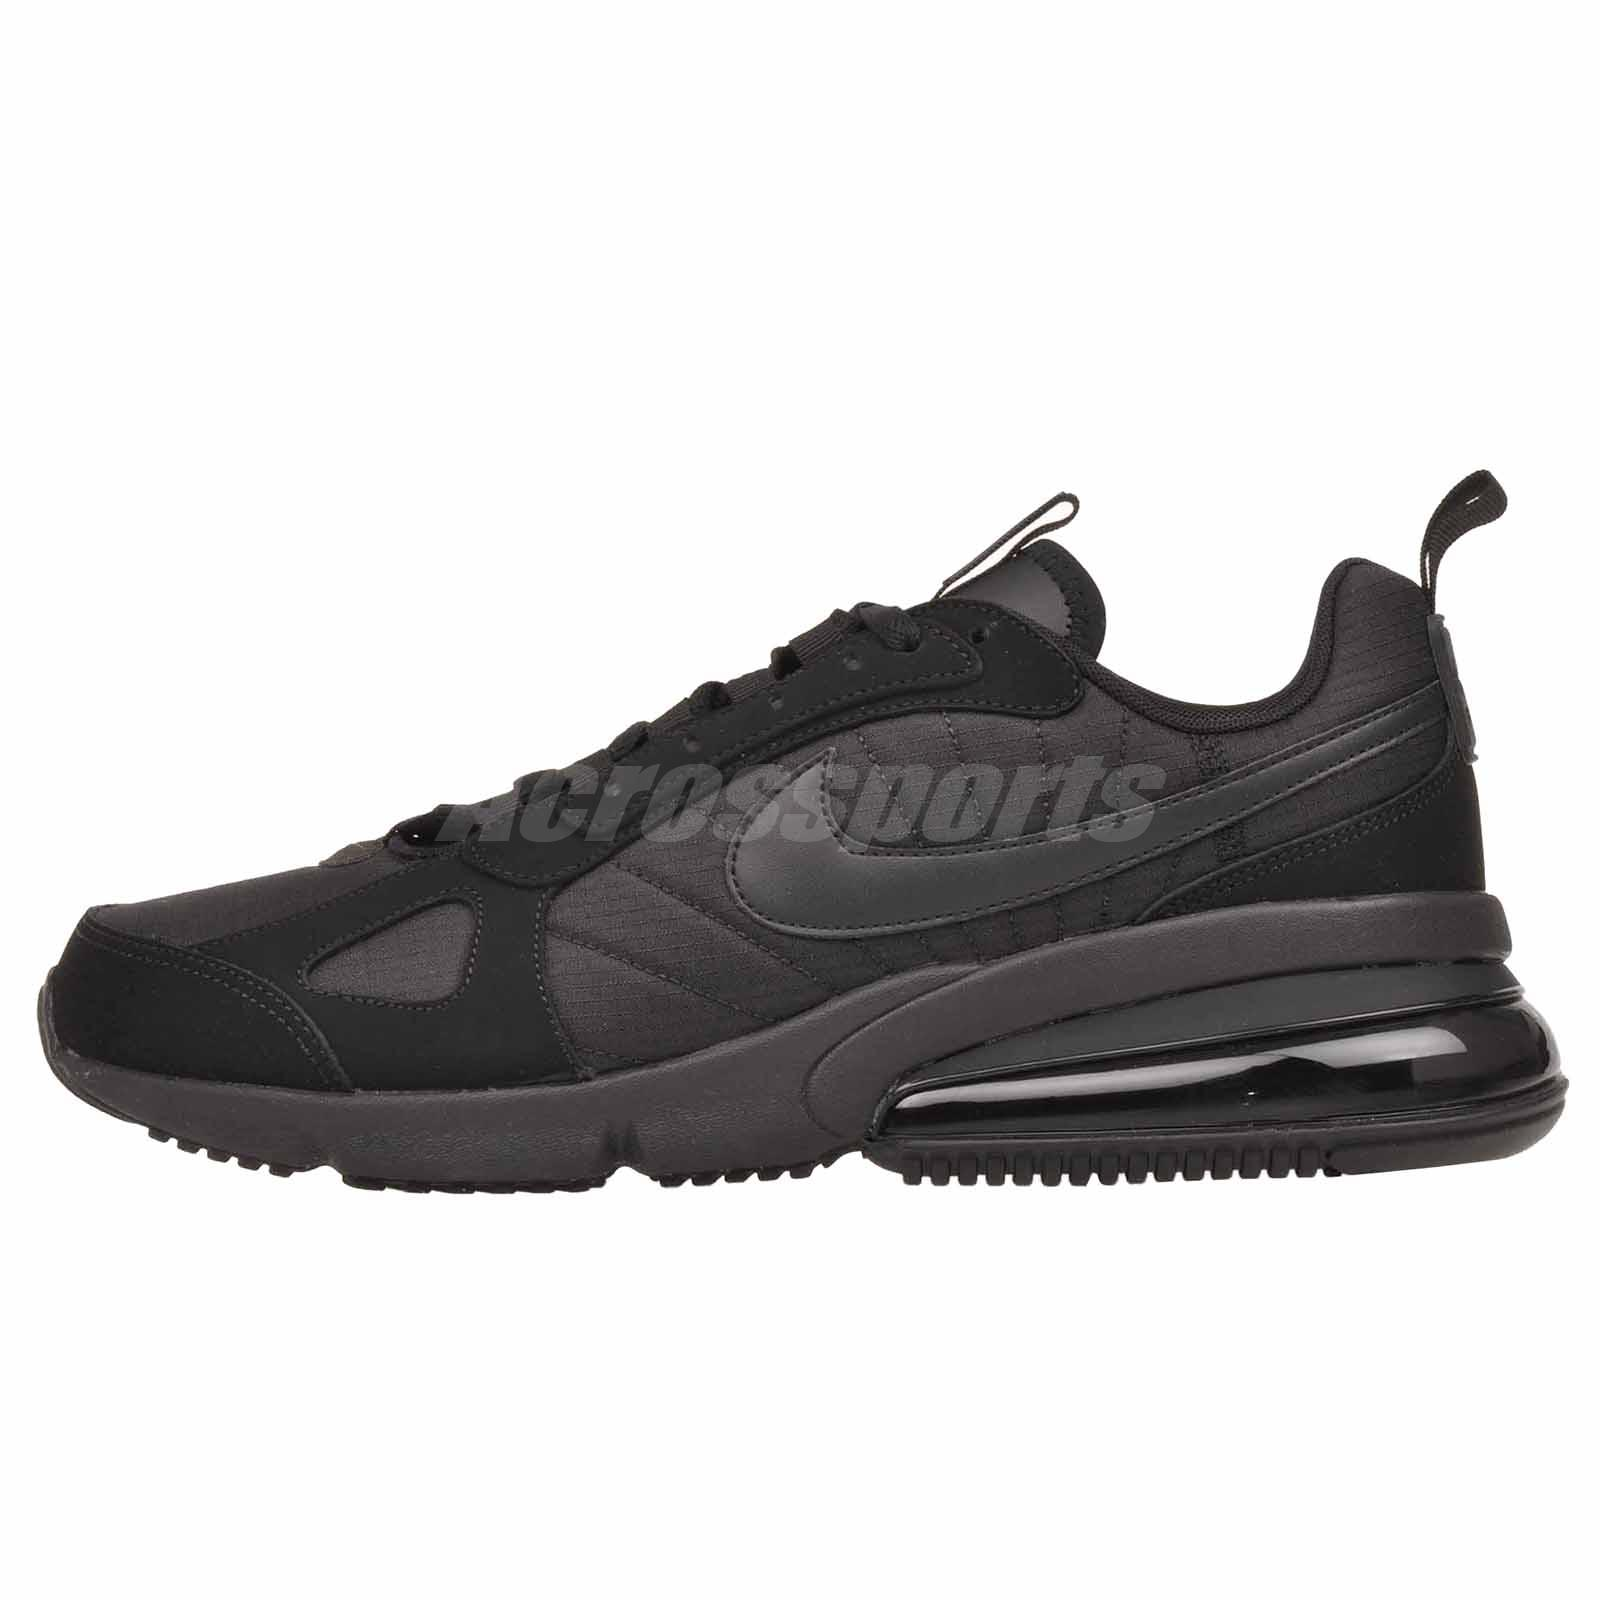 Air Max Running Details About Nike Air Max 270 Futura Running Mens Shoes Black Anthracite Ao1569 005